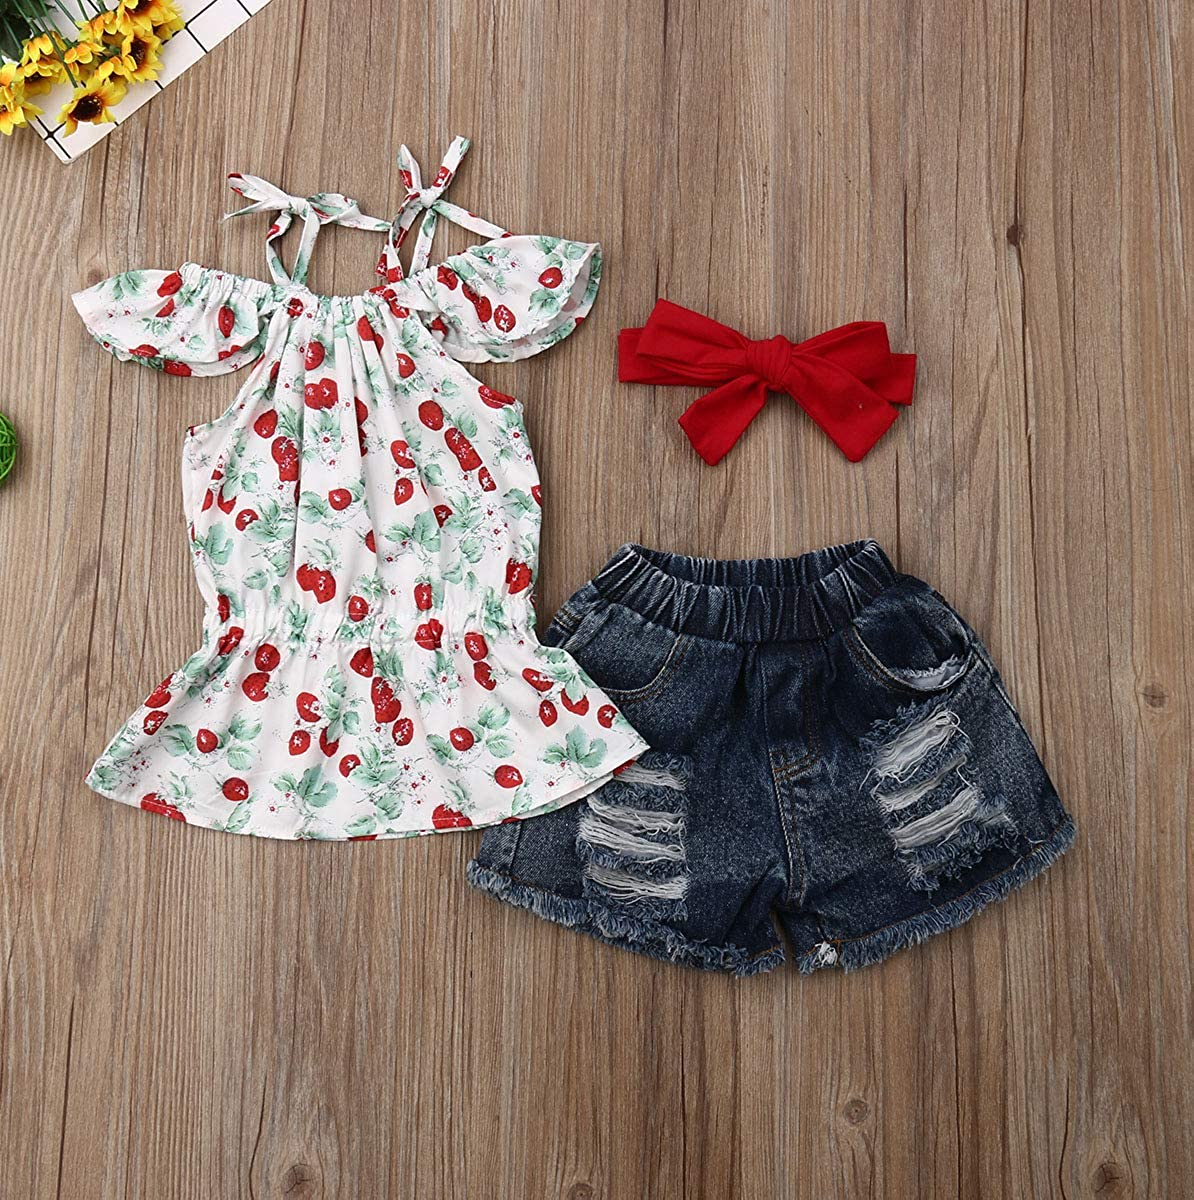 Infant Baby Girl Cherry Print Strap Knot Tank Top Demin Shorts Outfit Clothes Set